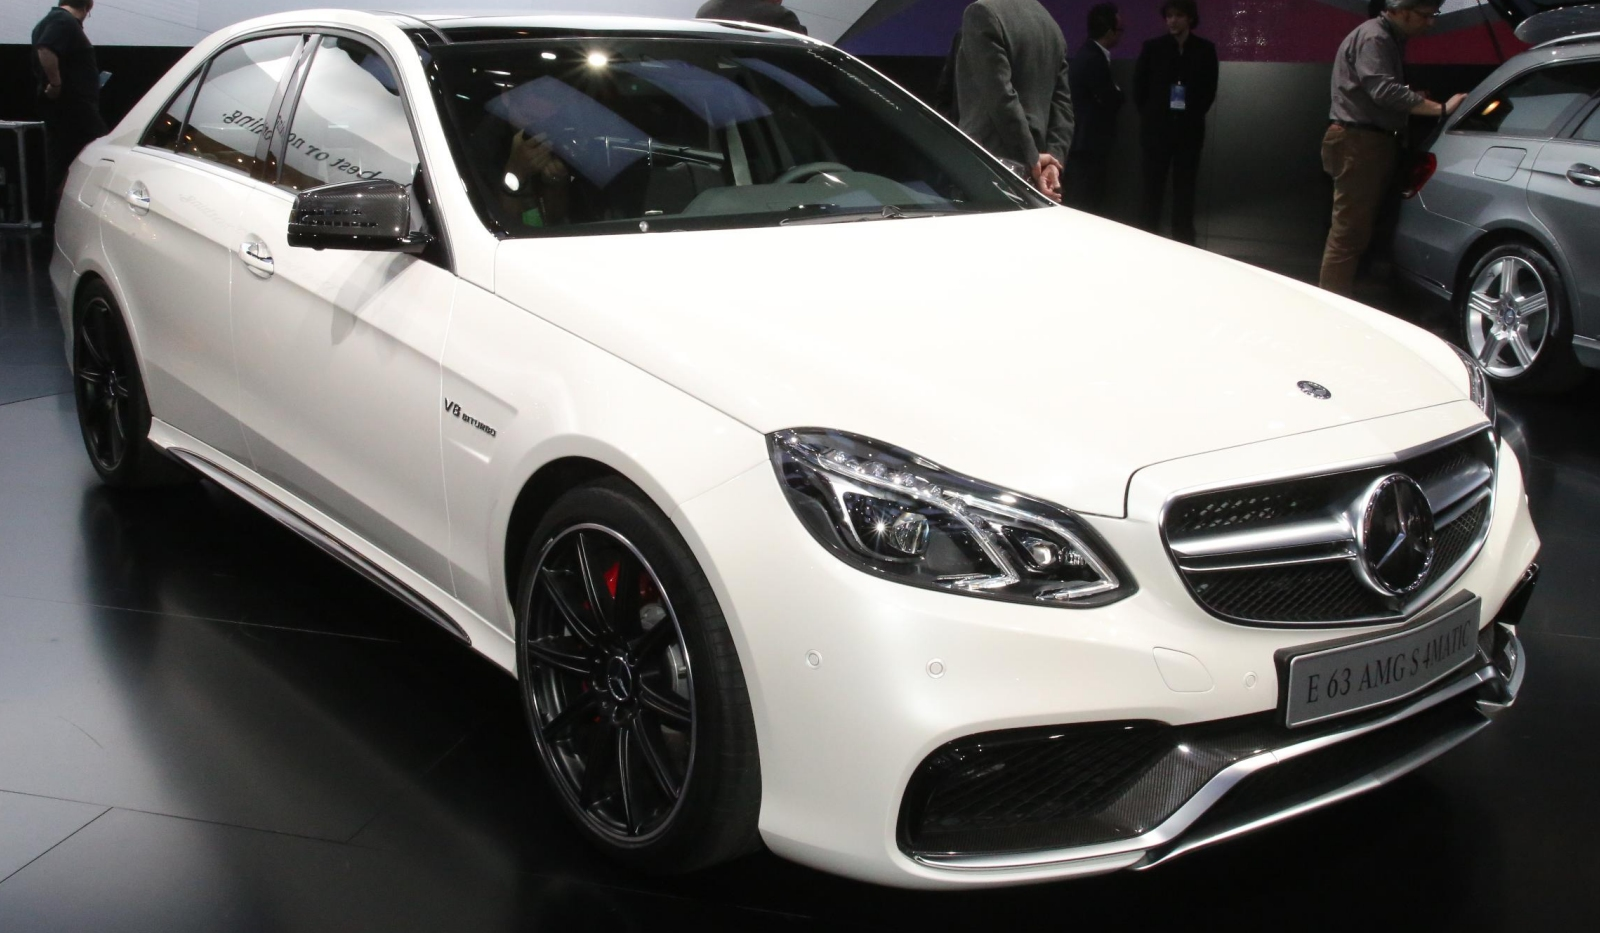 Motor Show 2013 , the brand new for 2014 Mercedes-Benz E63 AMG 4Matic